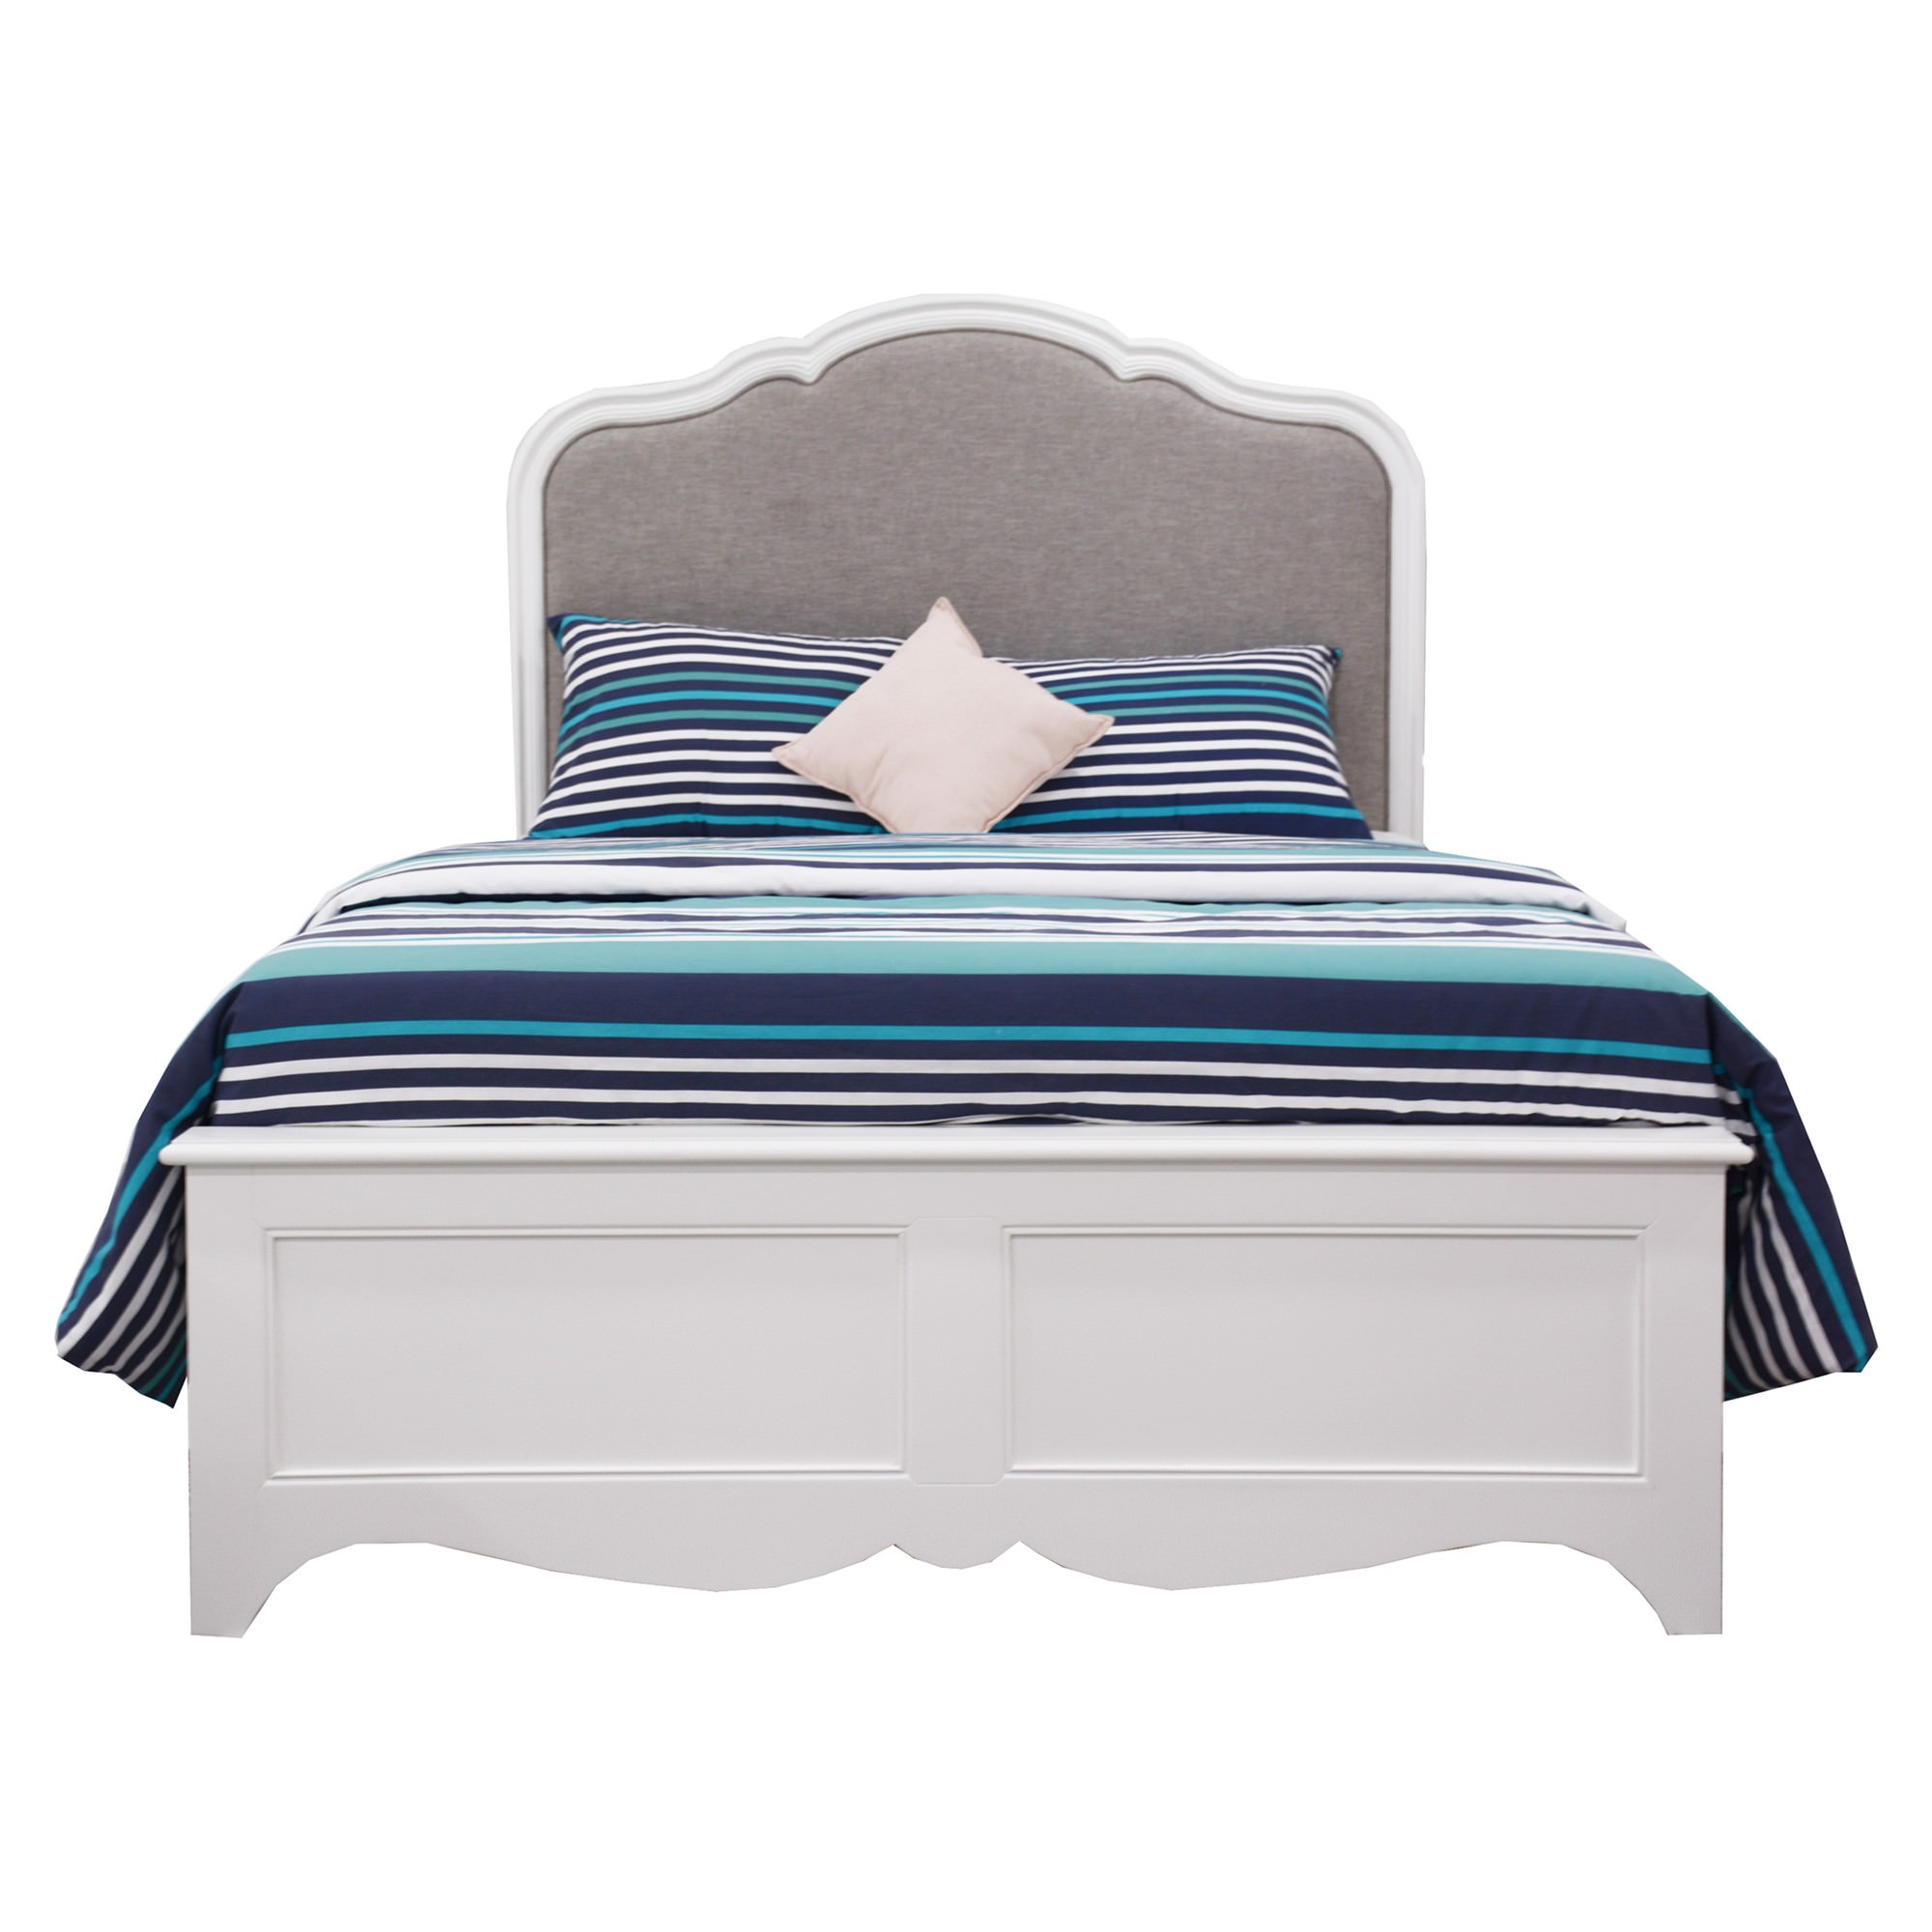 Brittany Acacia Timber & Fabric Bed, Queen